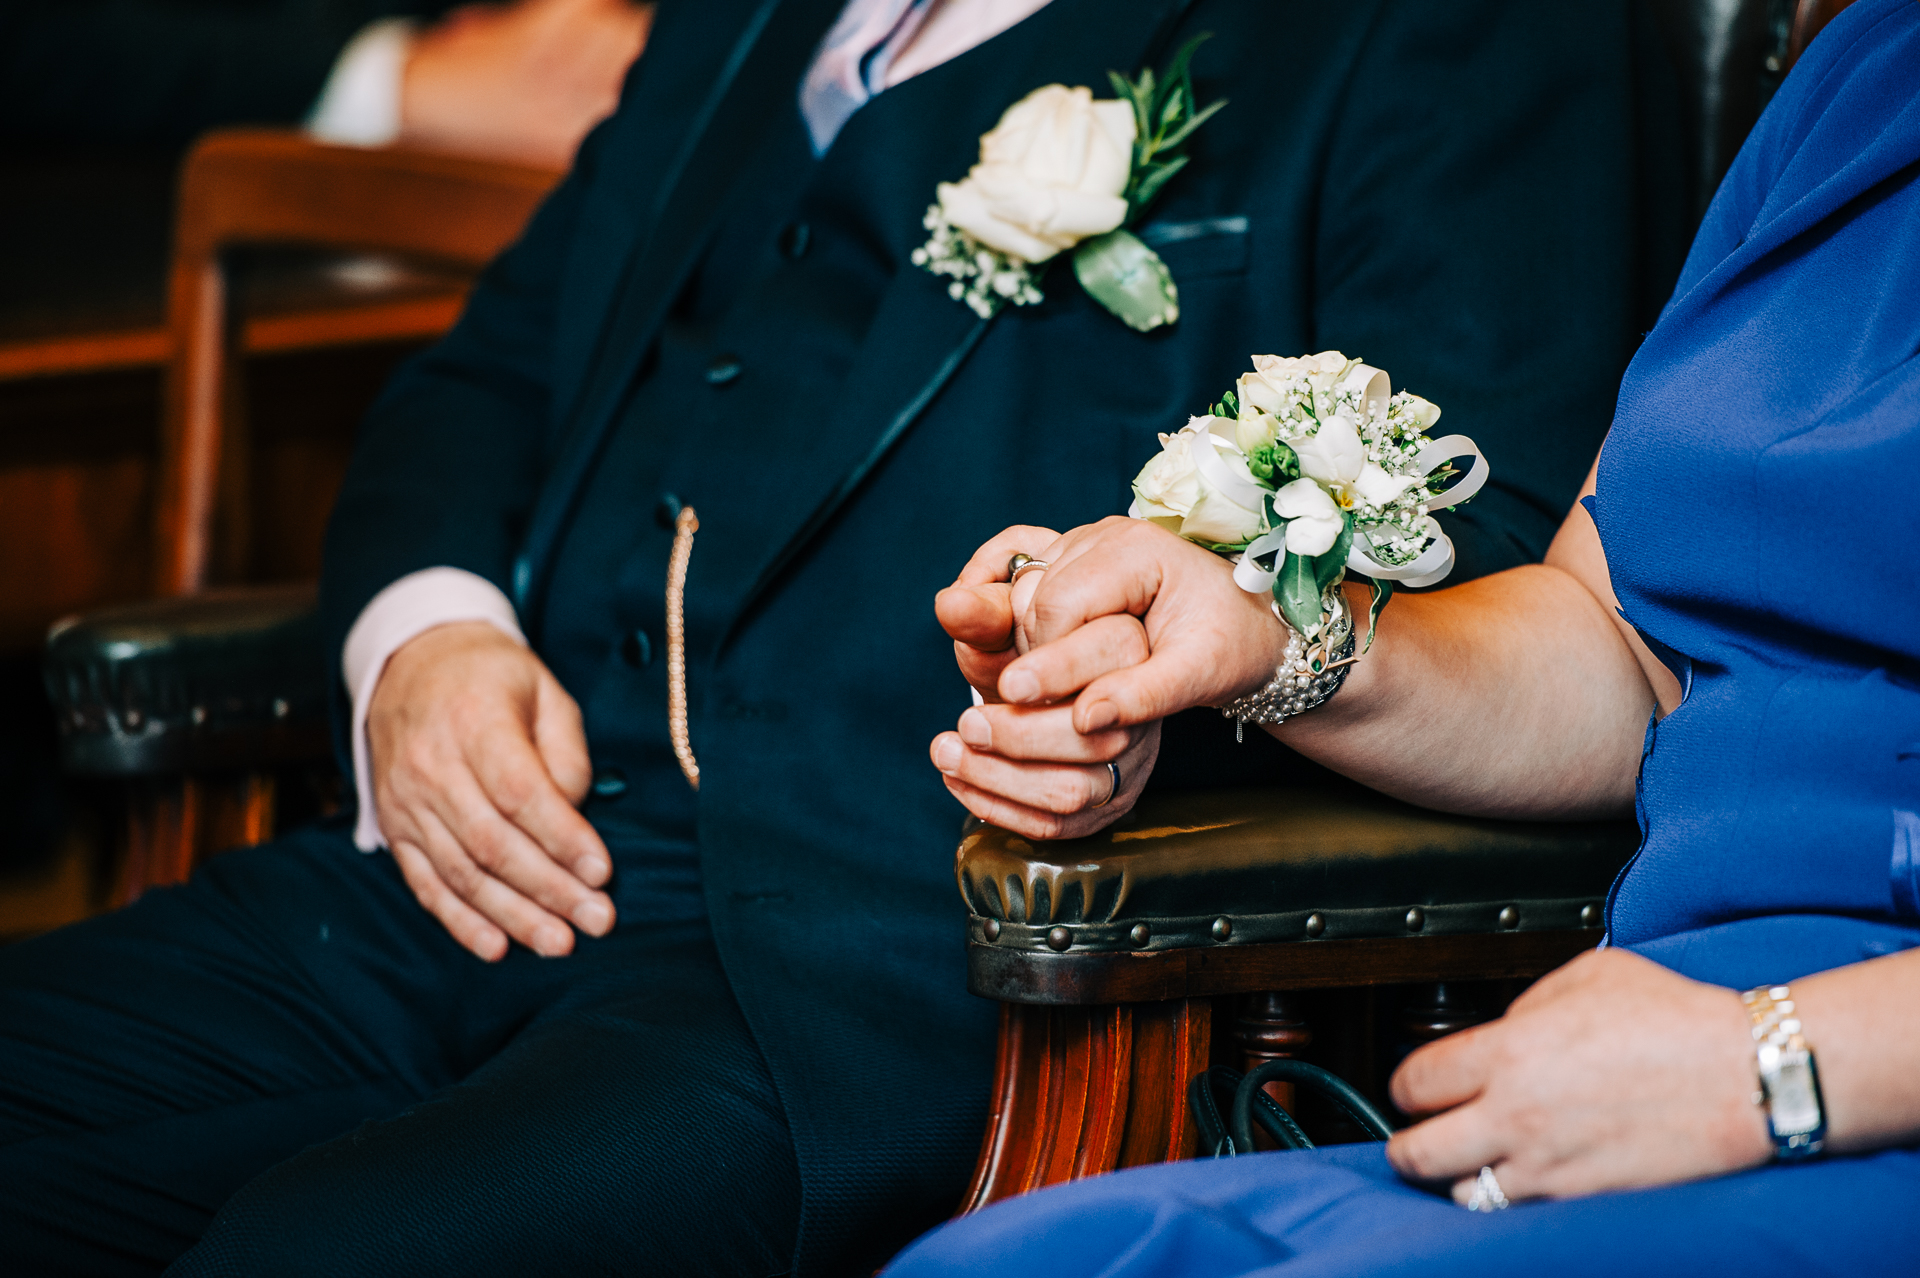 Brighton Town Hall Elopement Ceremony Detail Photo | The bride wore a striking blue dress and a wrist corsage of white roses